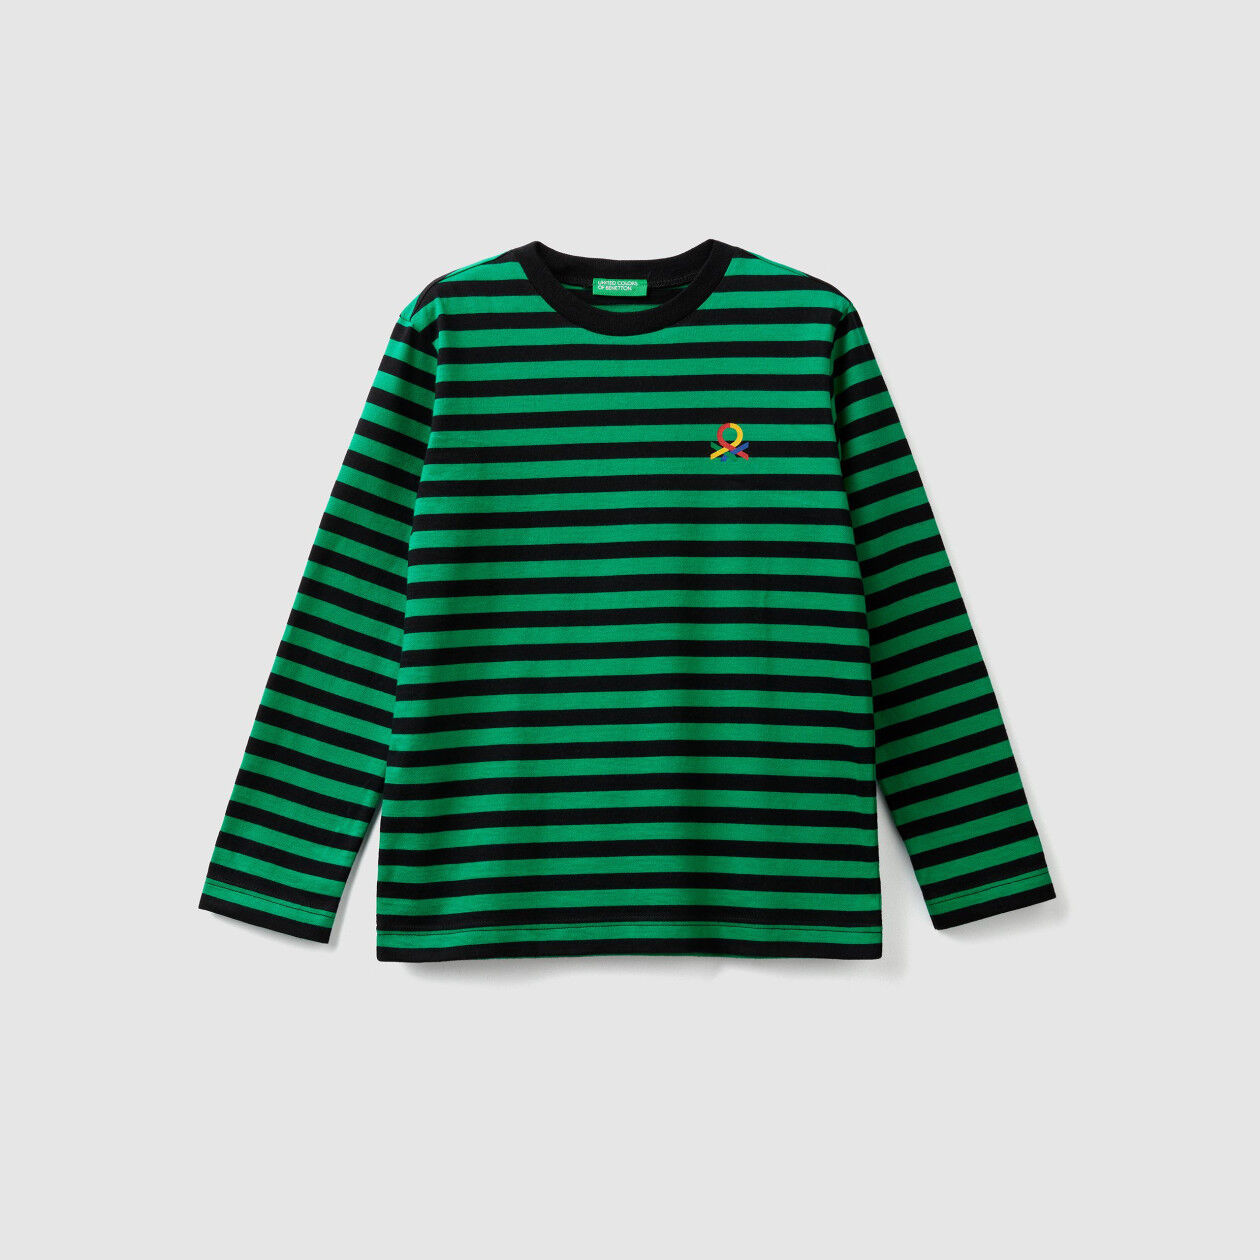 Striped t-shirt with logo